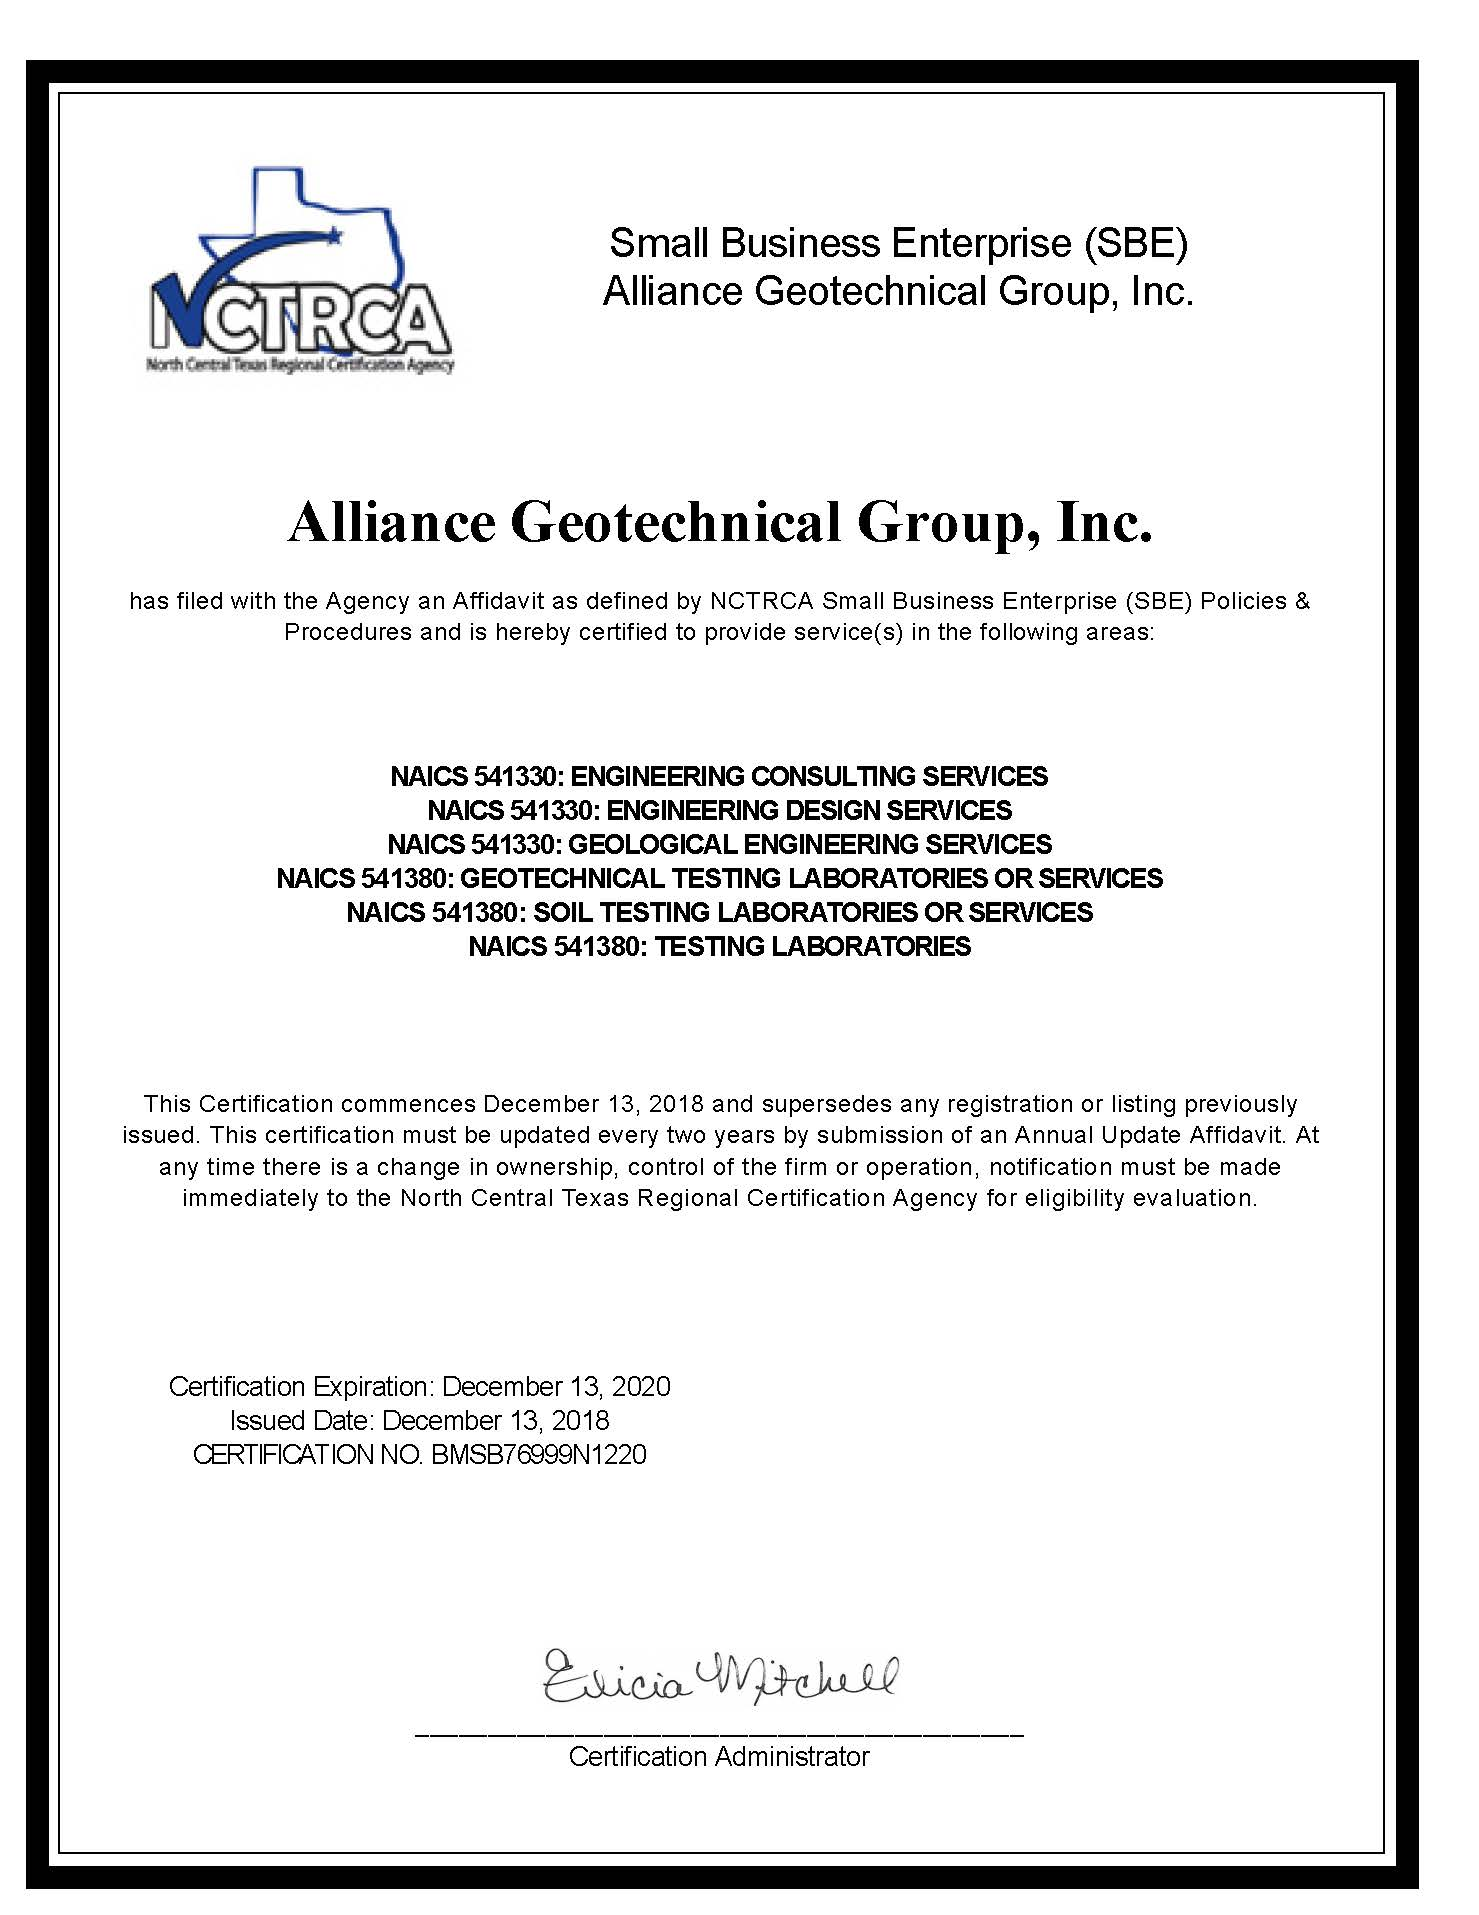 Alliance Geotechnical Group